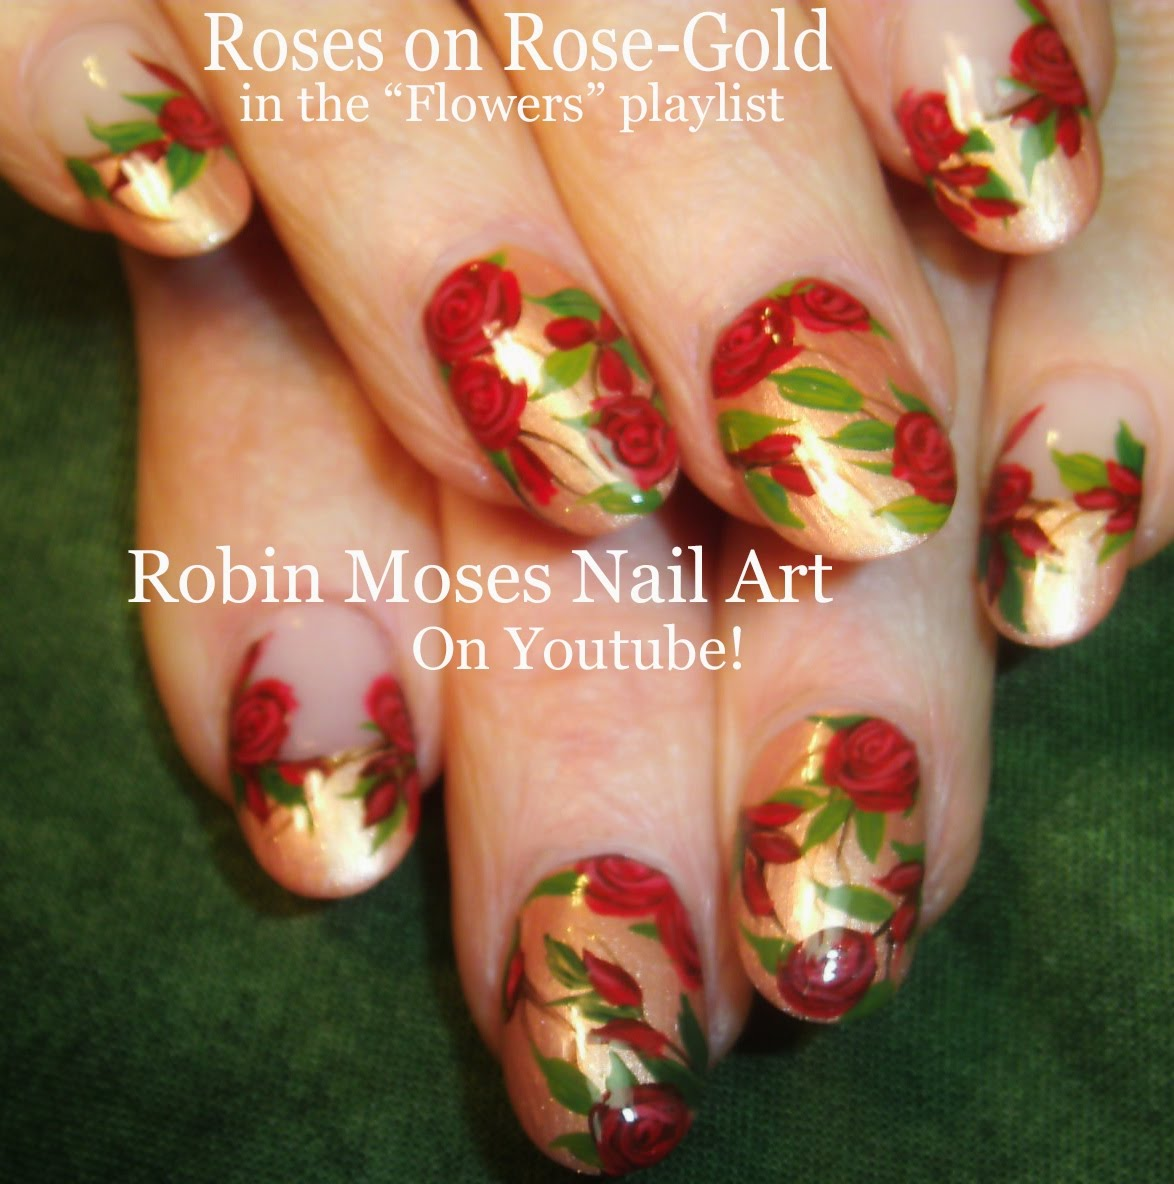 Show Off You Nail Art Skills With This Easy Red Rose Nail Art Design